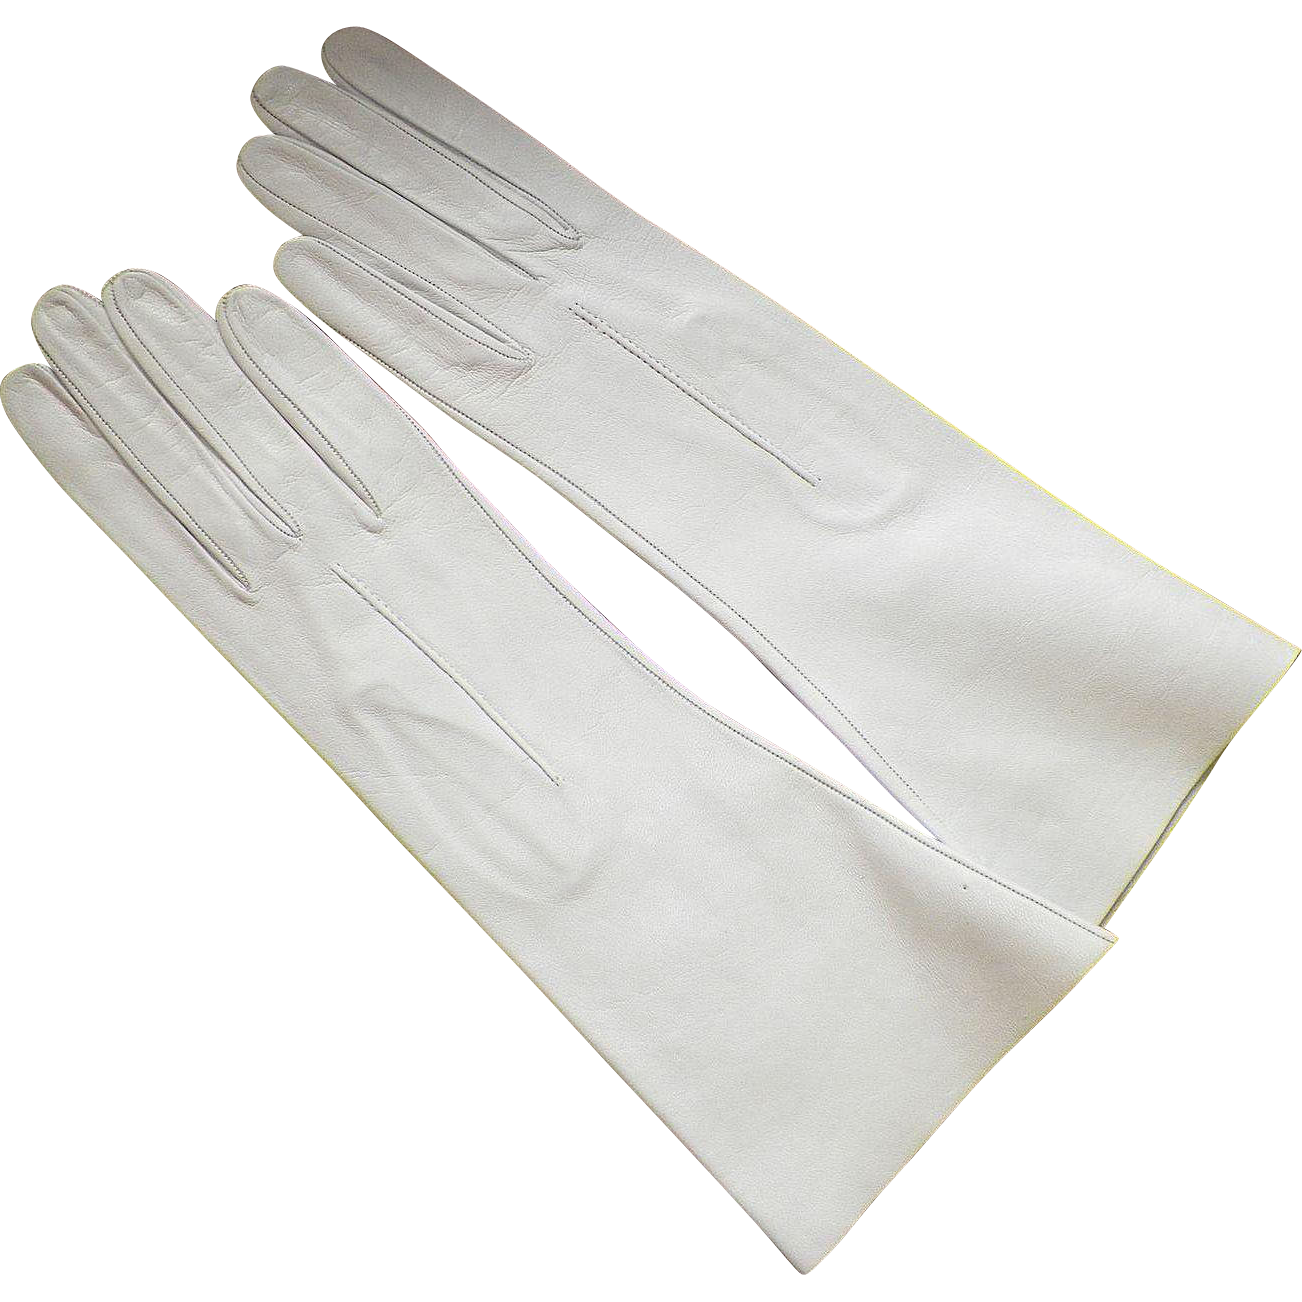 vintage washable oyster leather gloves made in italy never worn  - vintage washable oyster leather gloves made in italy never worn